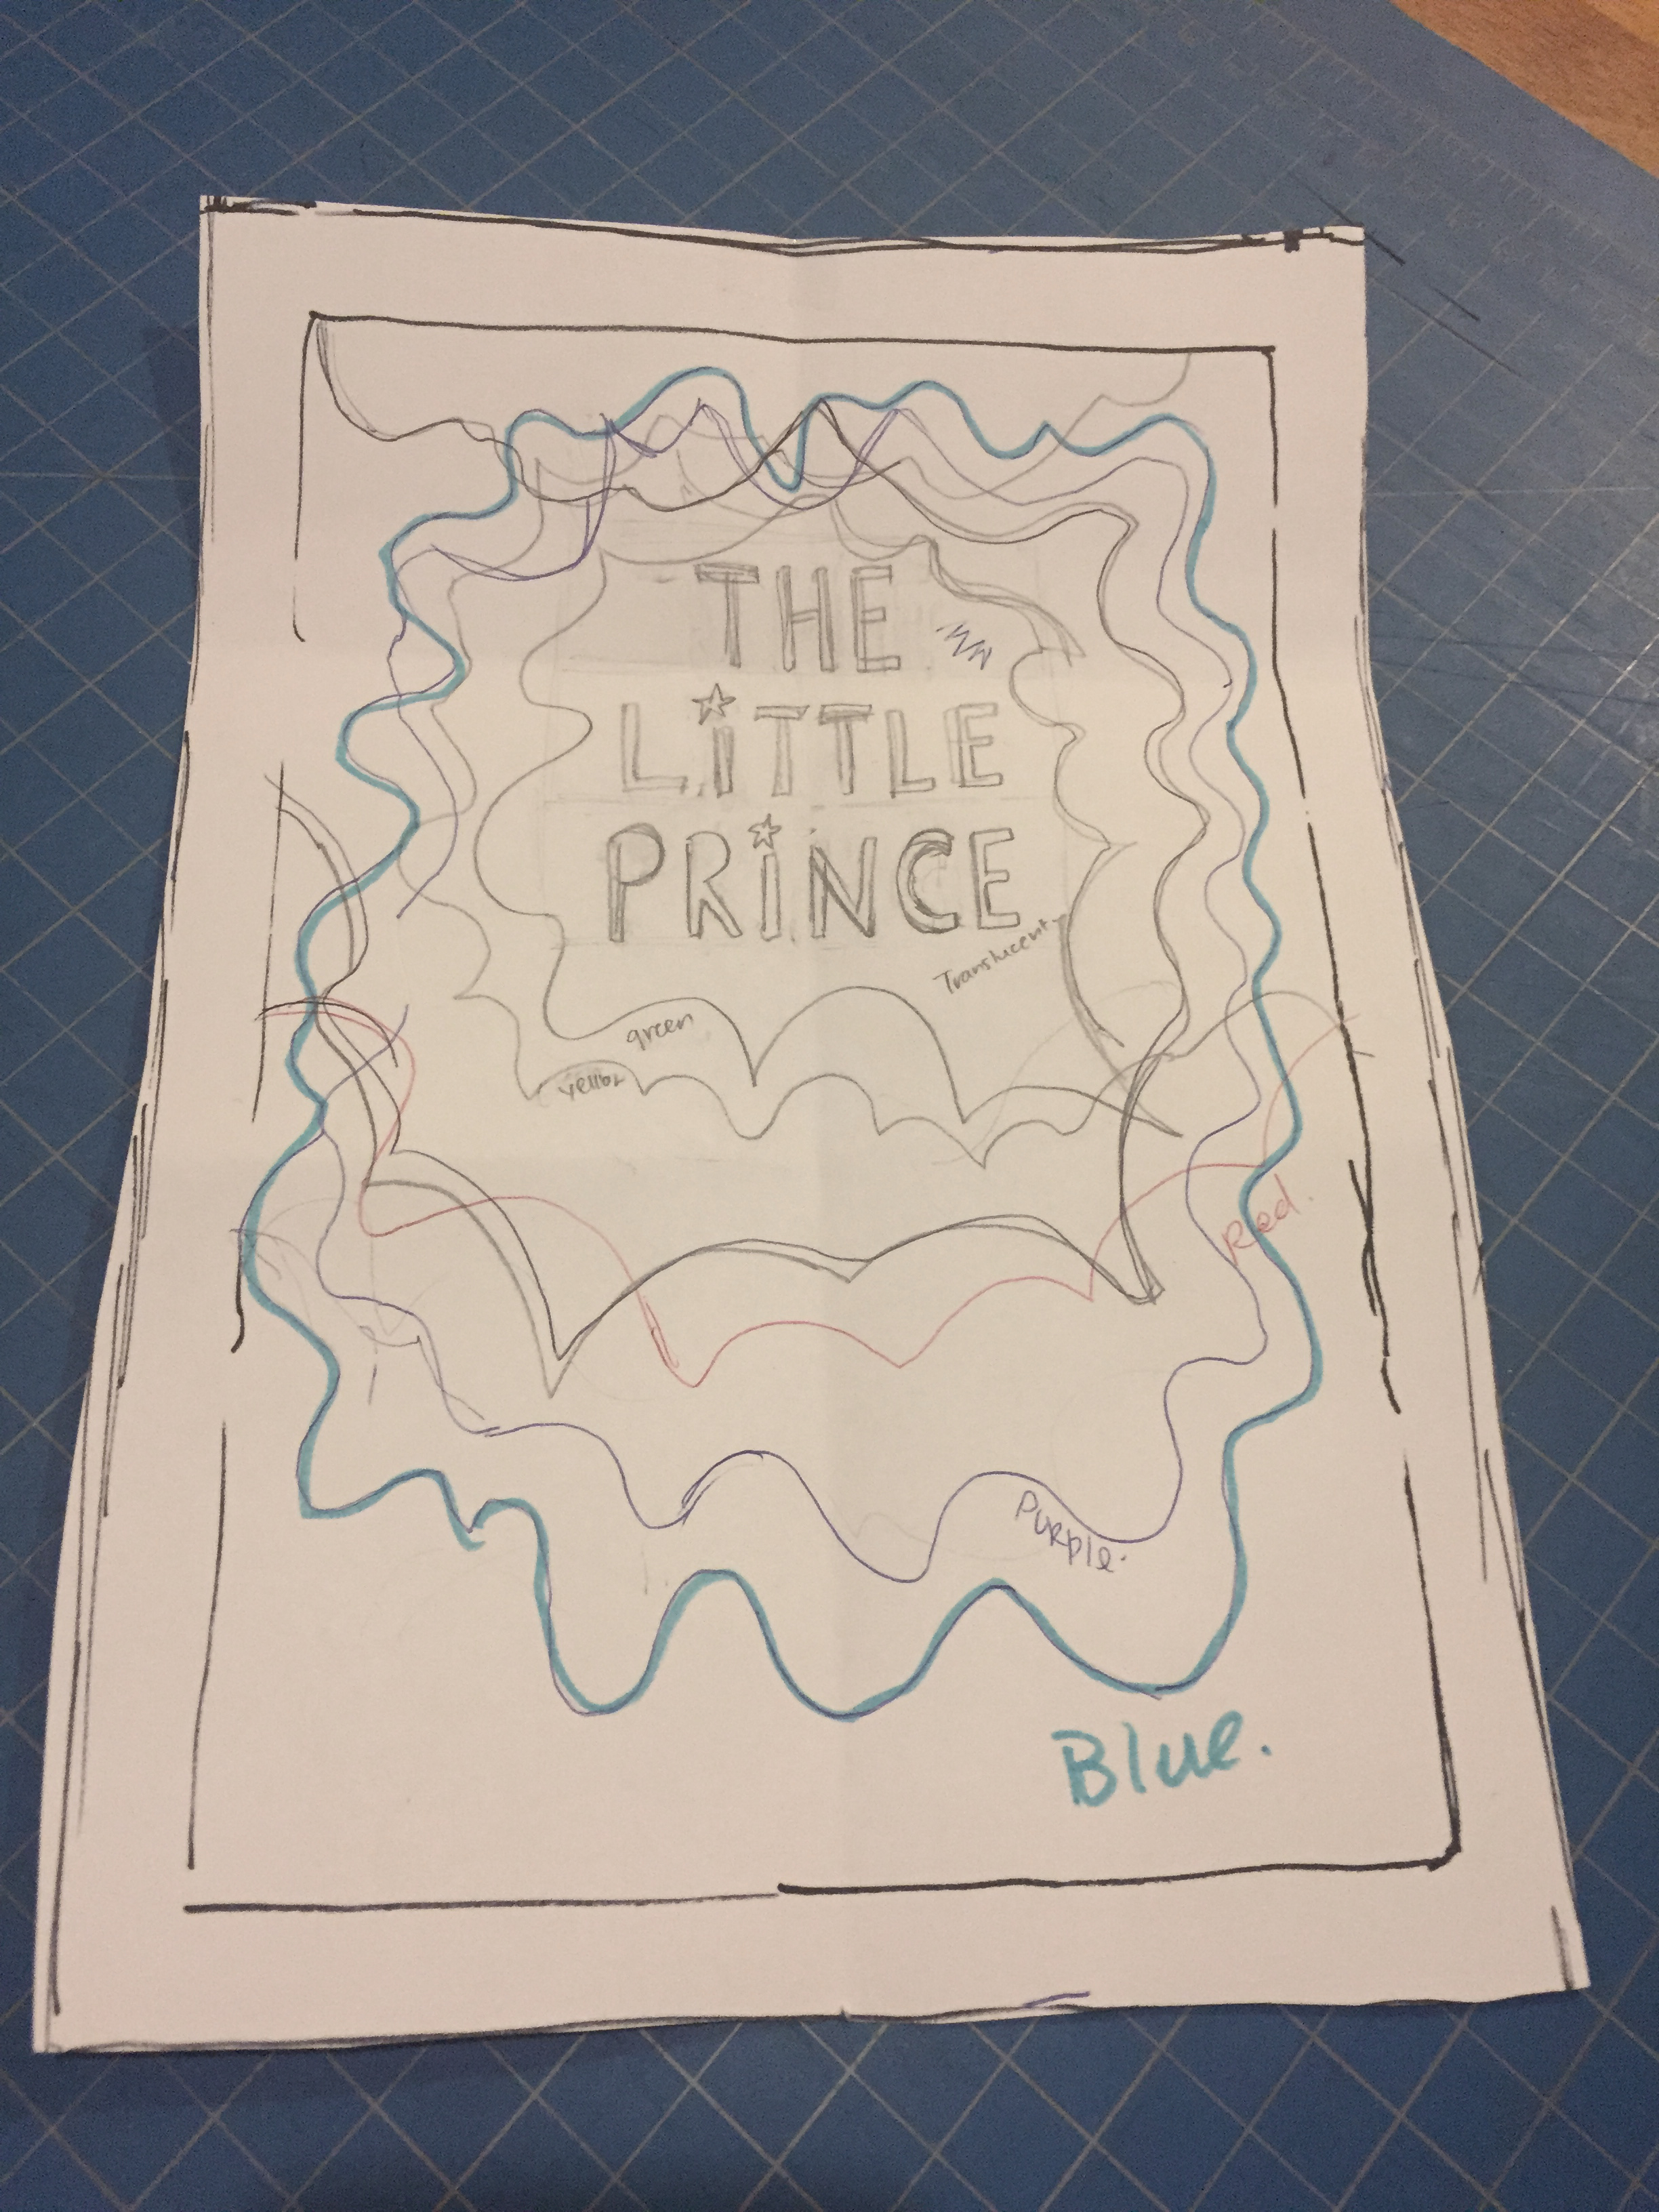 Book cover blueprint to cut with an X-ACTO knife